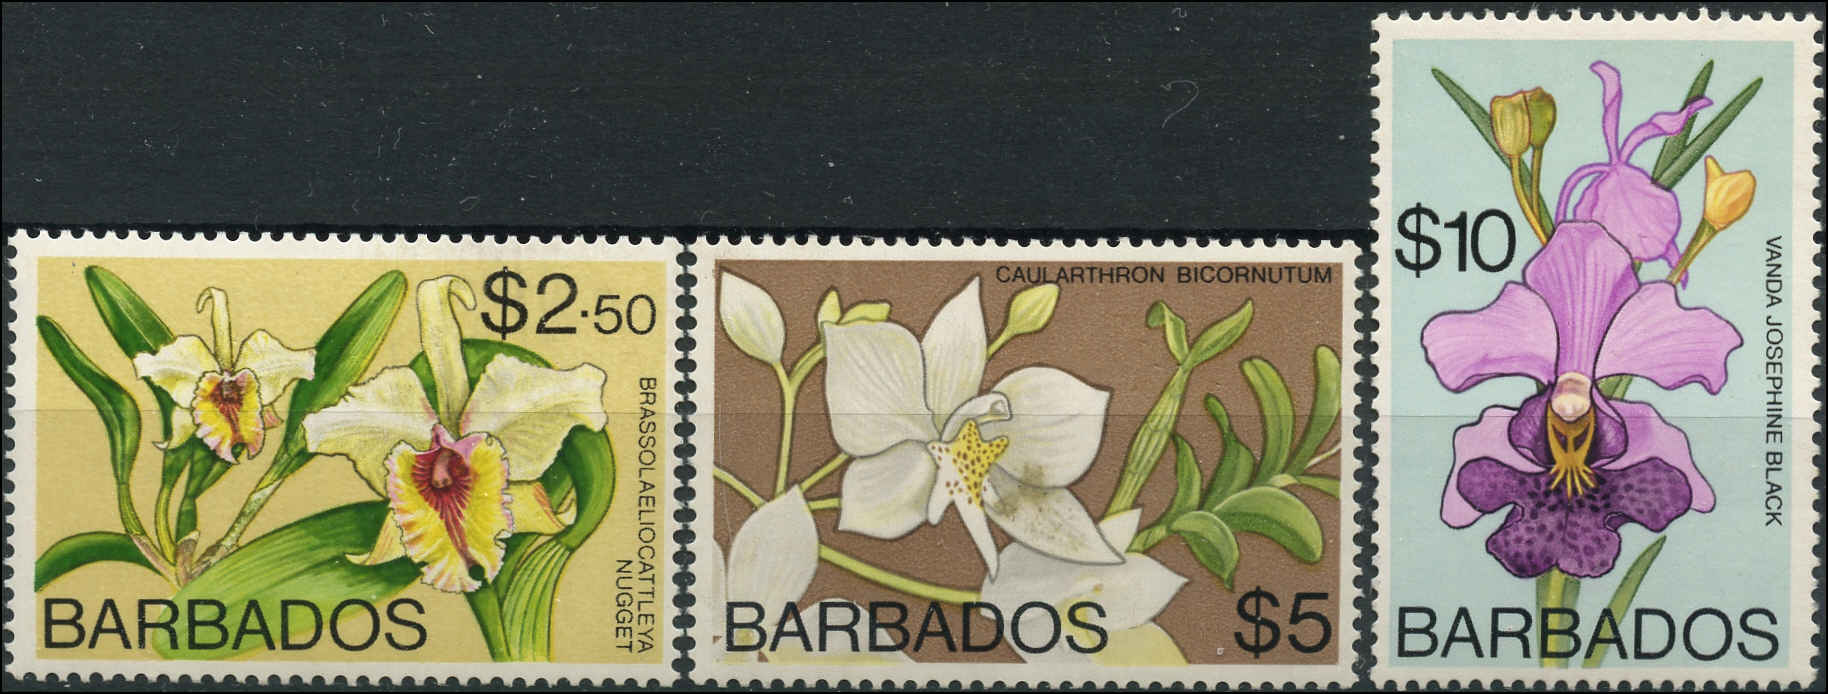 Barbados Stamp, Scott #409-11, F+, MNH